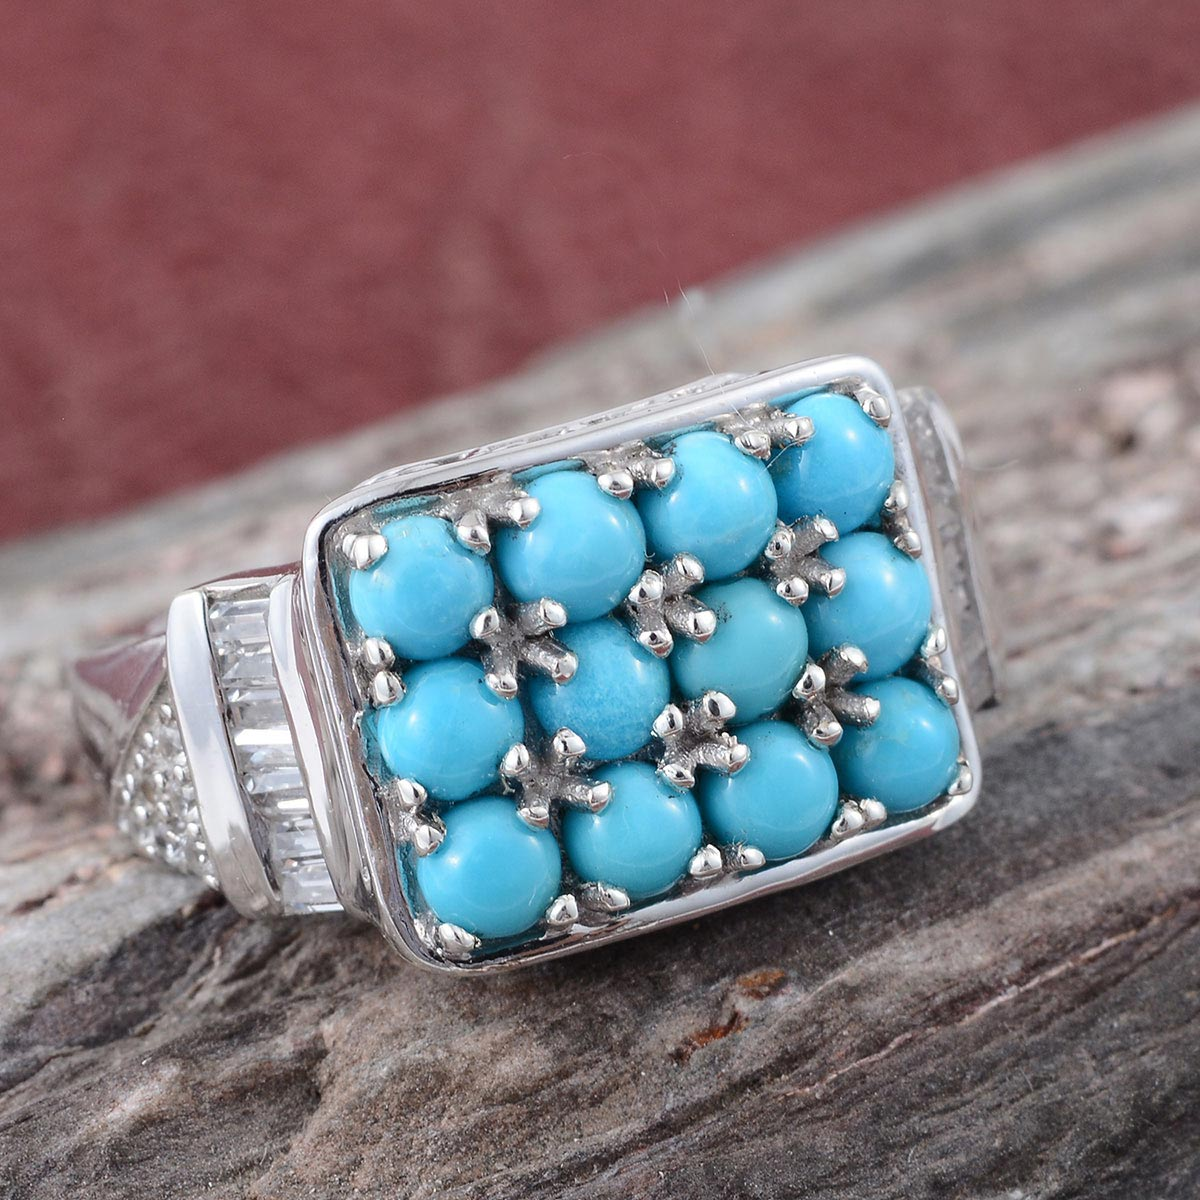 Arizona Sleeping Beauty Turquoise, Cambodian Zircon Ring in Platinum Over Sterling Silver (Size 7.0) 2.05 ctw